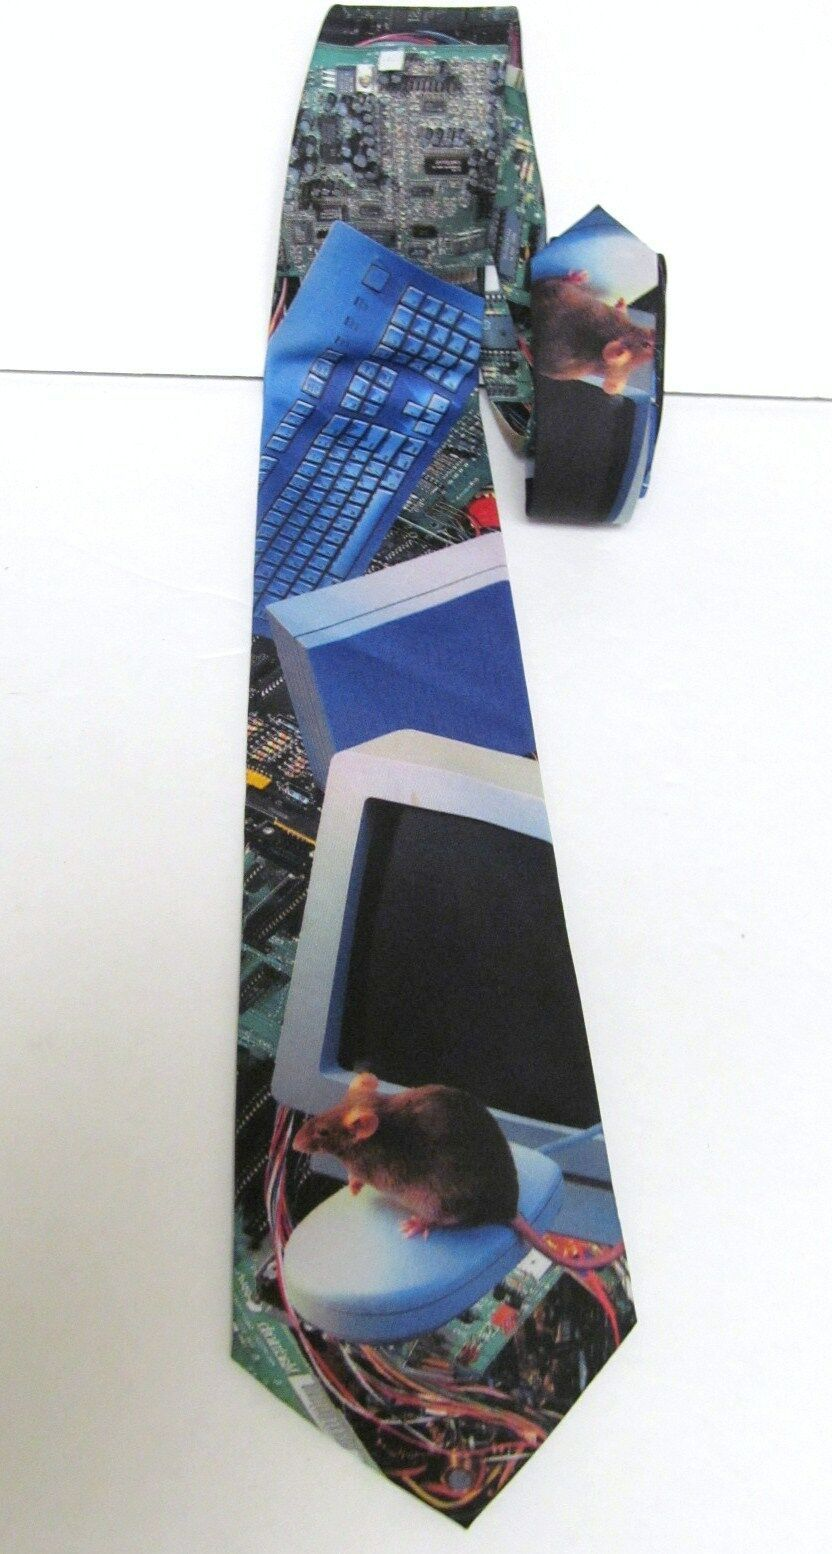 Ralph Marlin COMPUTER IMAGES W Mouse 100% Polyester Neck Tie Multi Color USA image 4